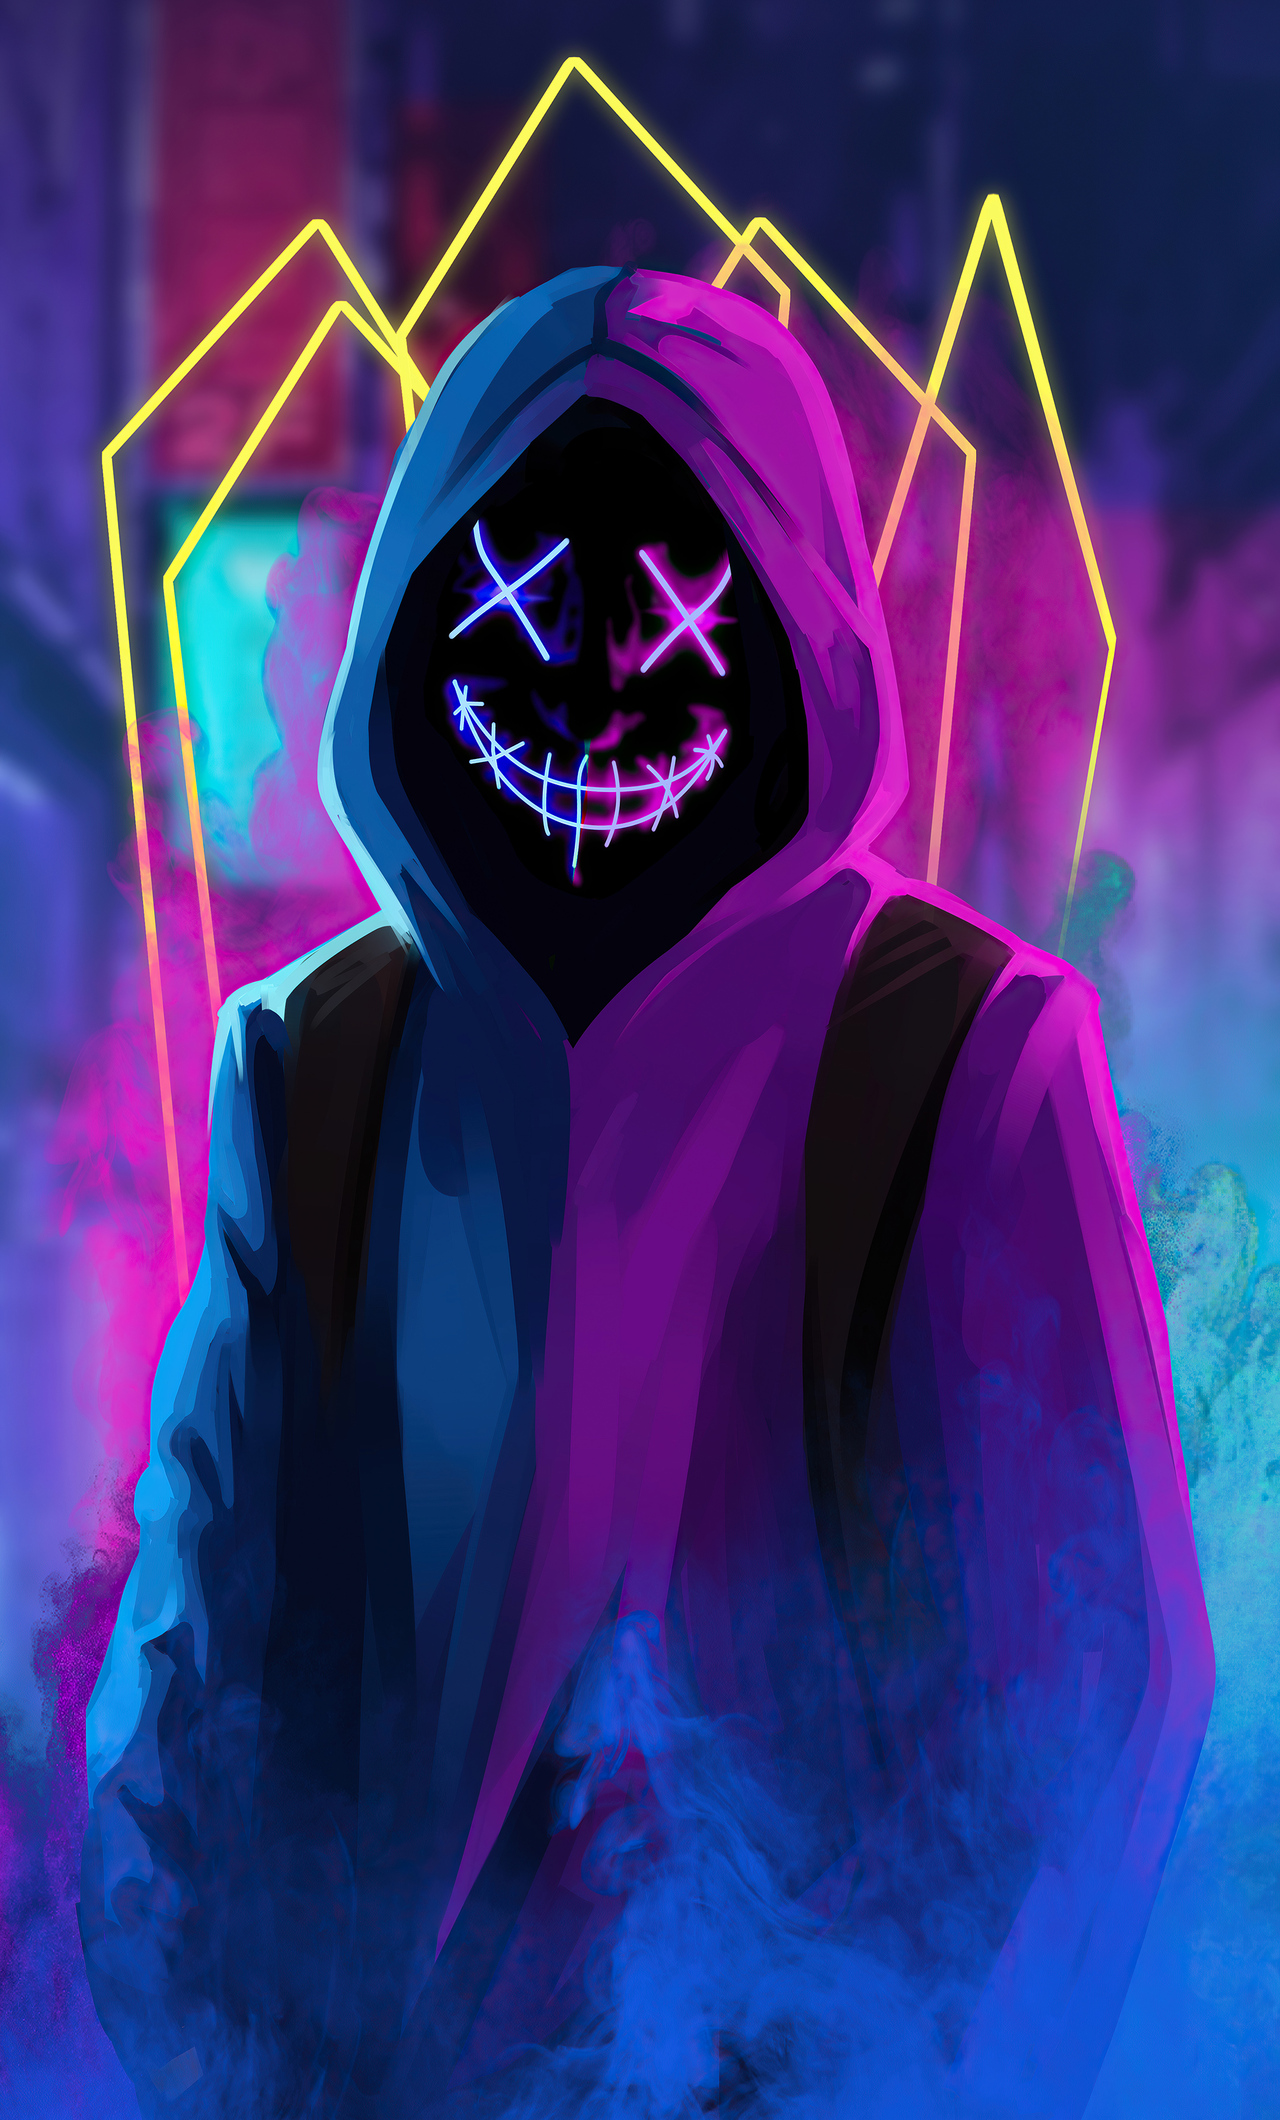 1280x2120 Mask Neon Guy iPhone 6+ HD 4k Wallpapers, Images ...